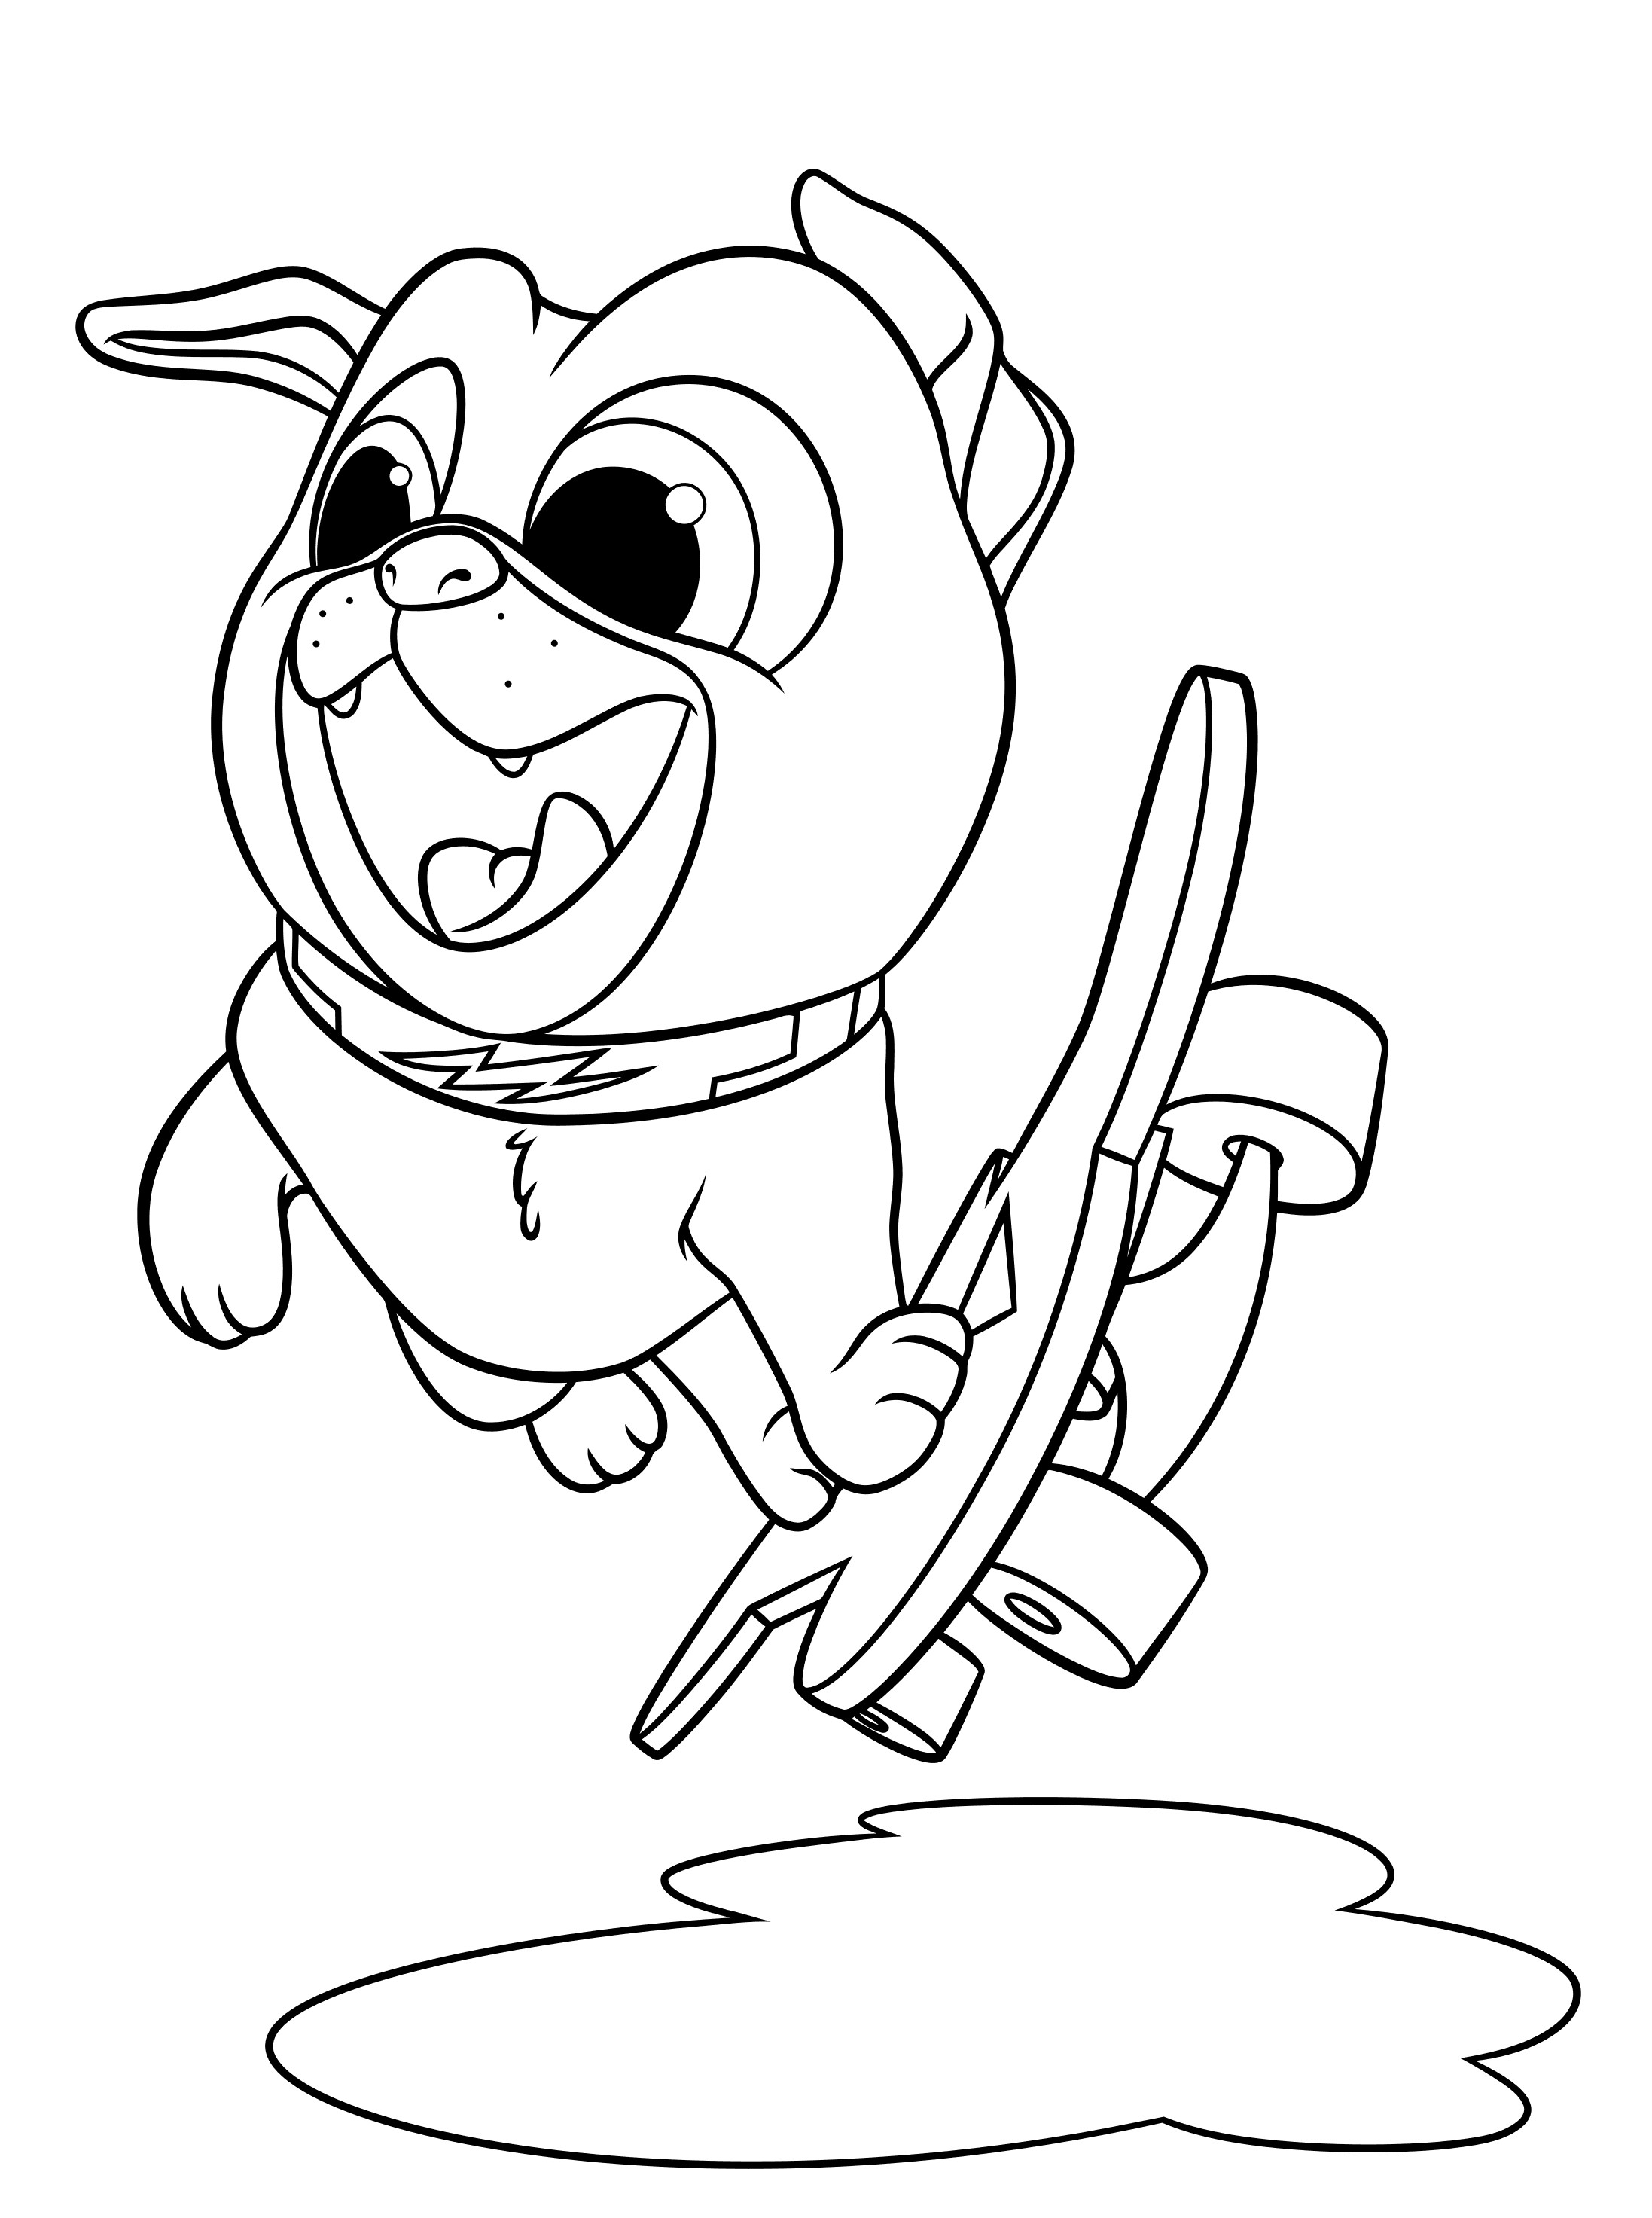 coloring page puppy free printable puppies coloring pages for kids puppy coloring page